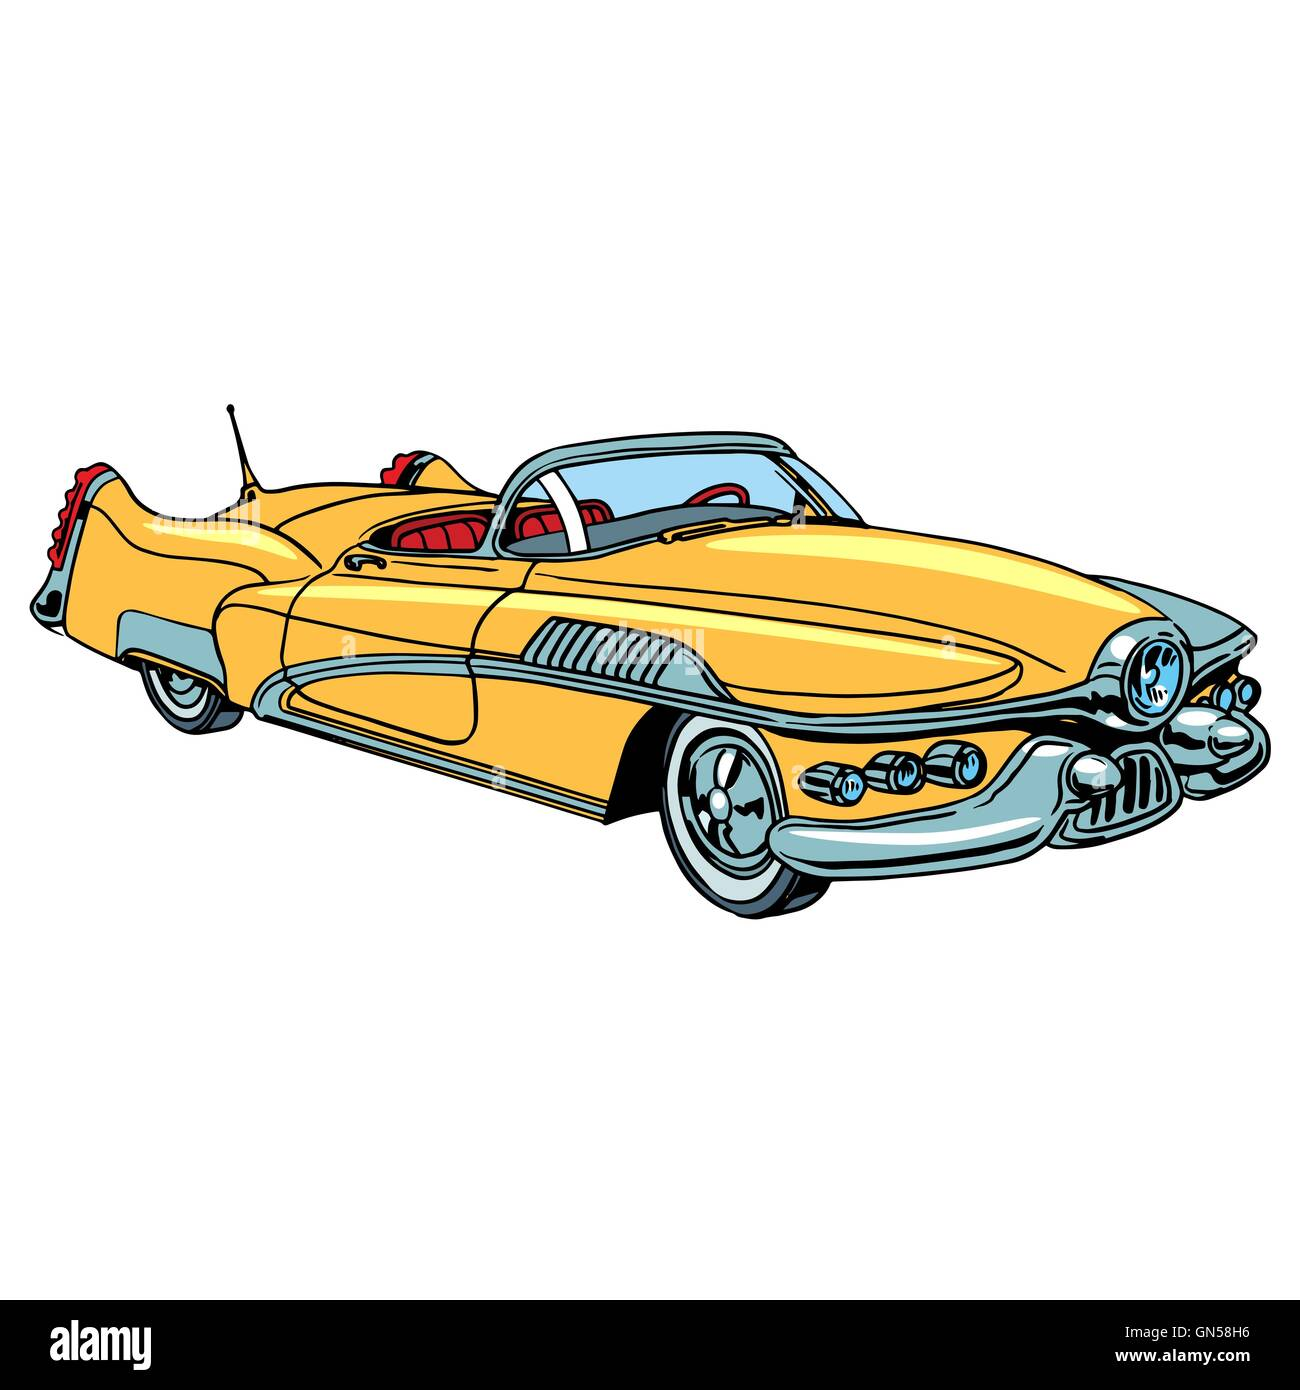 Retro yellow car classic abstract model - Stock Image